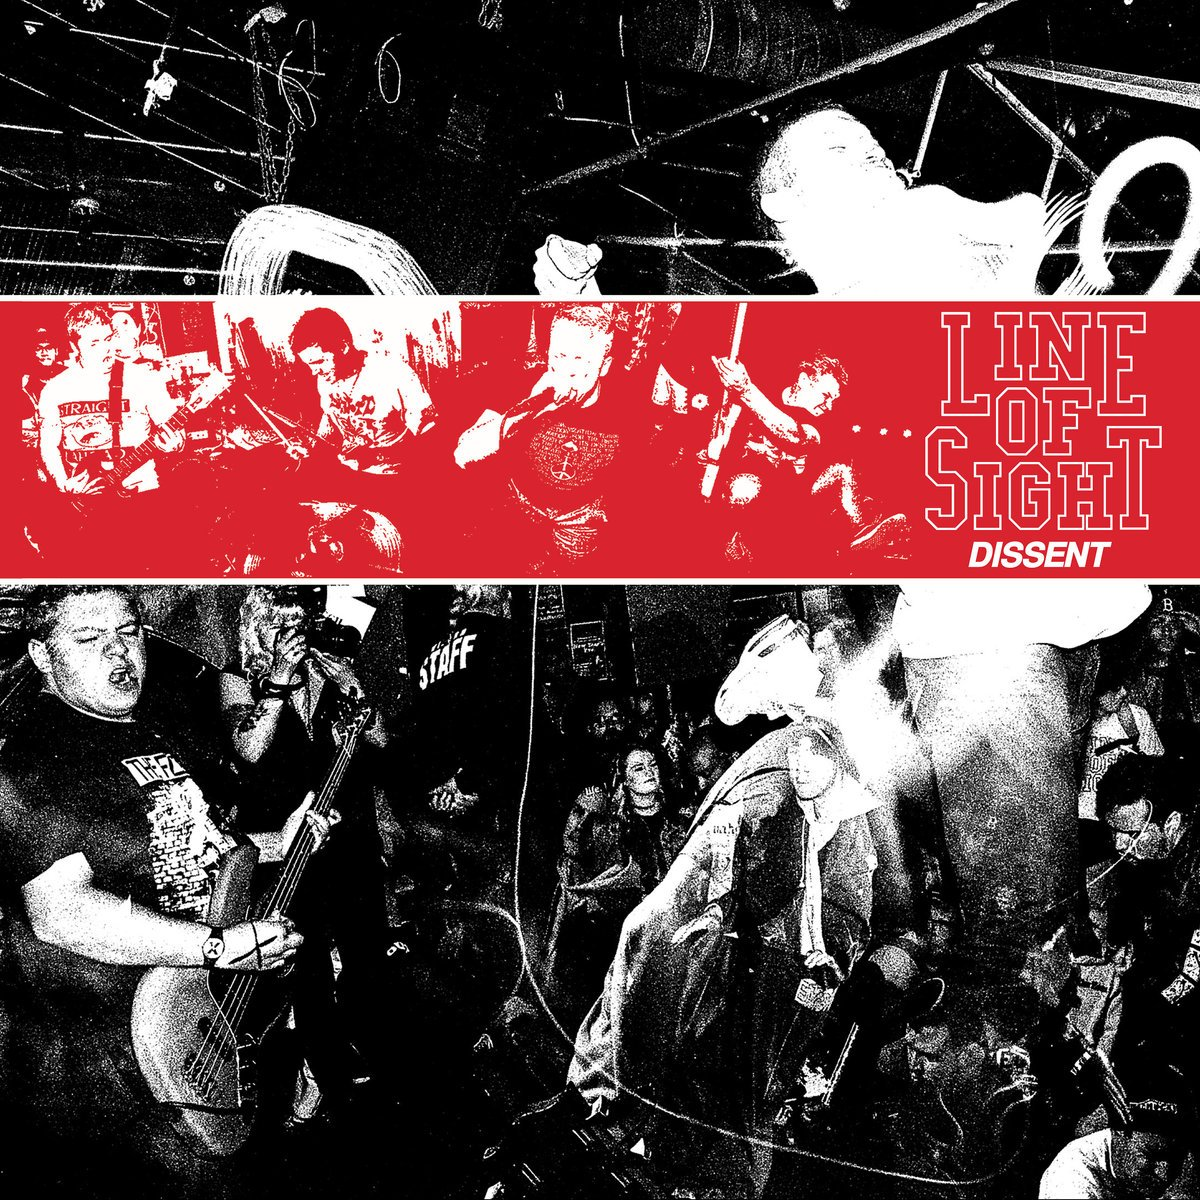 Stream the new DC hardcore band Line Of Sight's great debut EP Dissent https://t.co/rcgrFAmt96 https://t.co/45eKZ30aIS